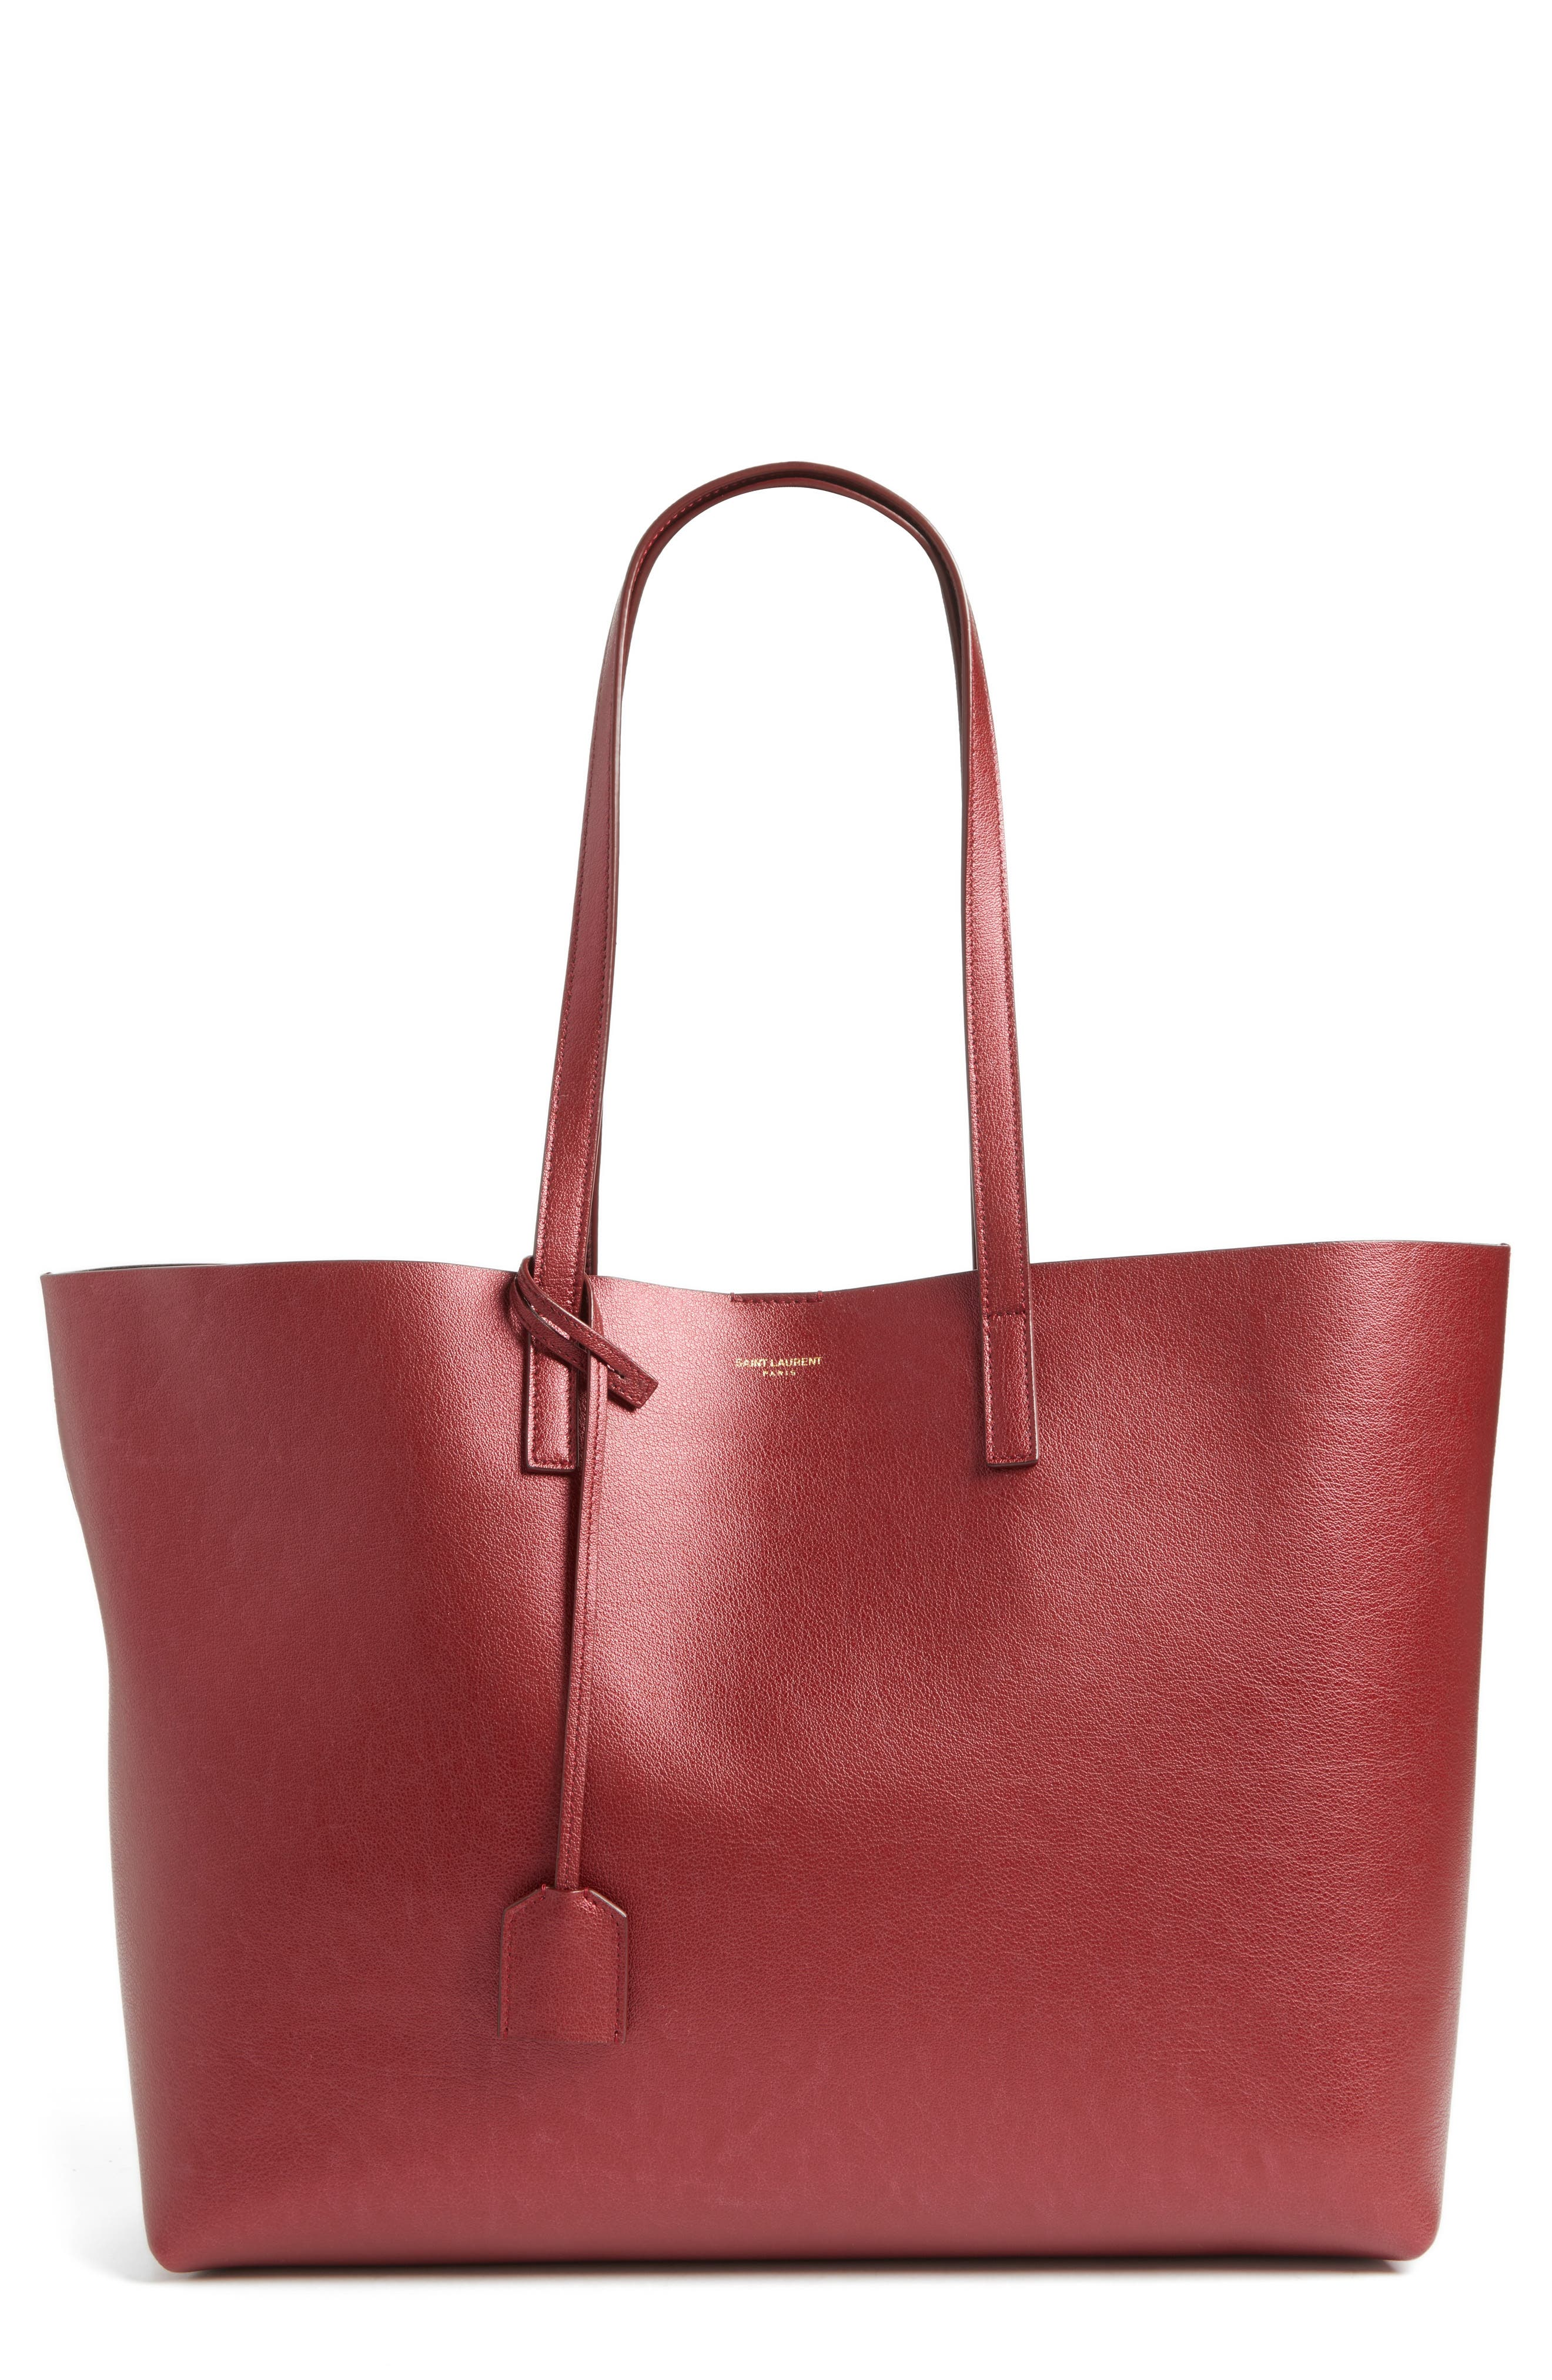 Main Image - Saint Laurent East/West Leather Tote with Zip Pouch